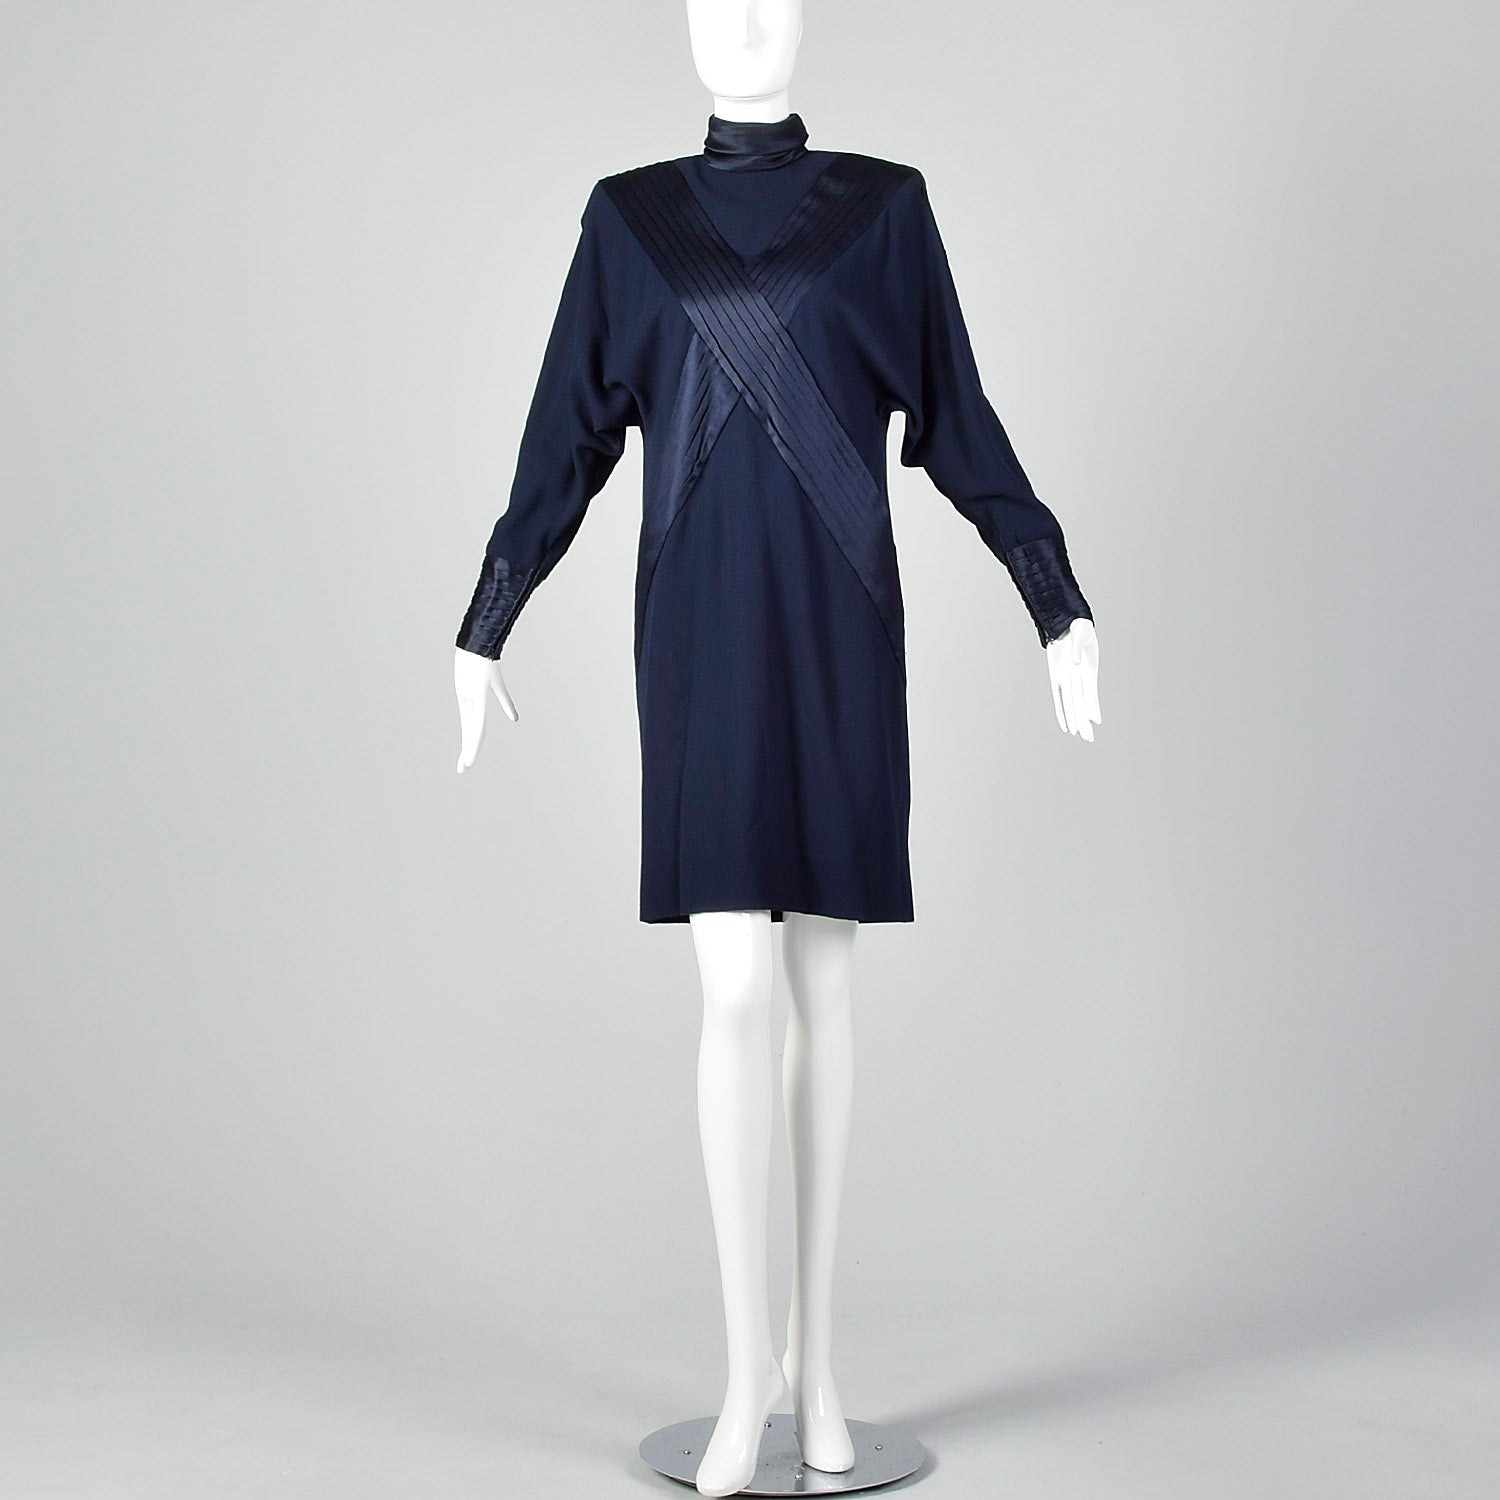 XS-Small Galanos 1980s Navy Dress